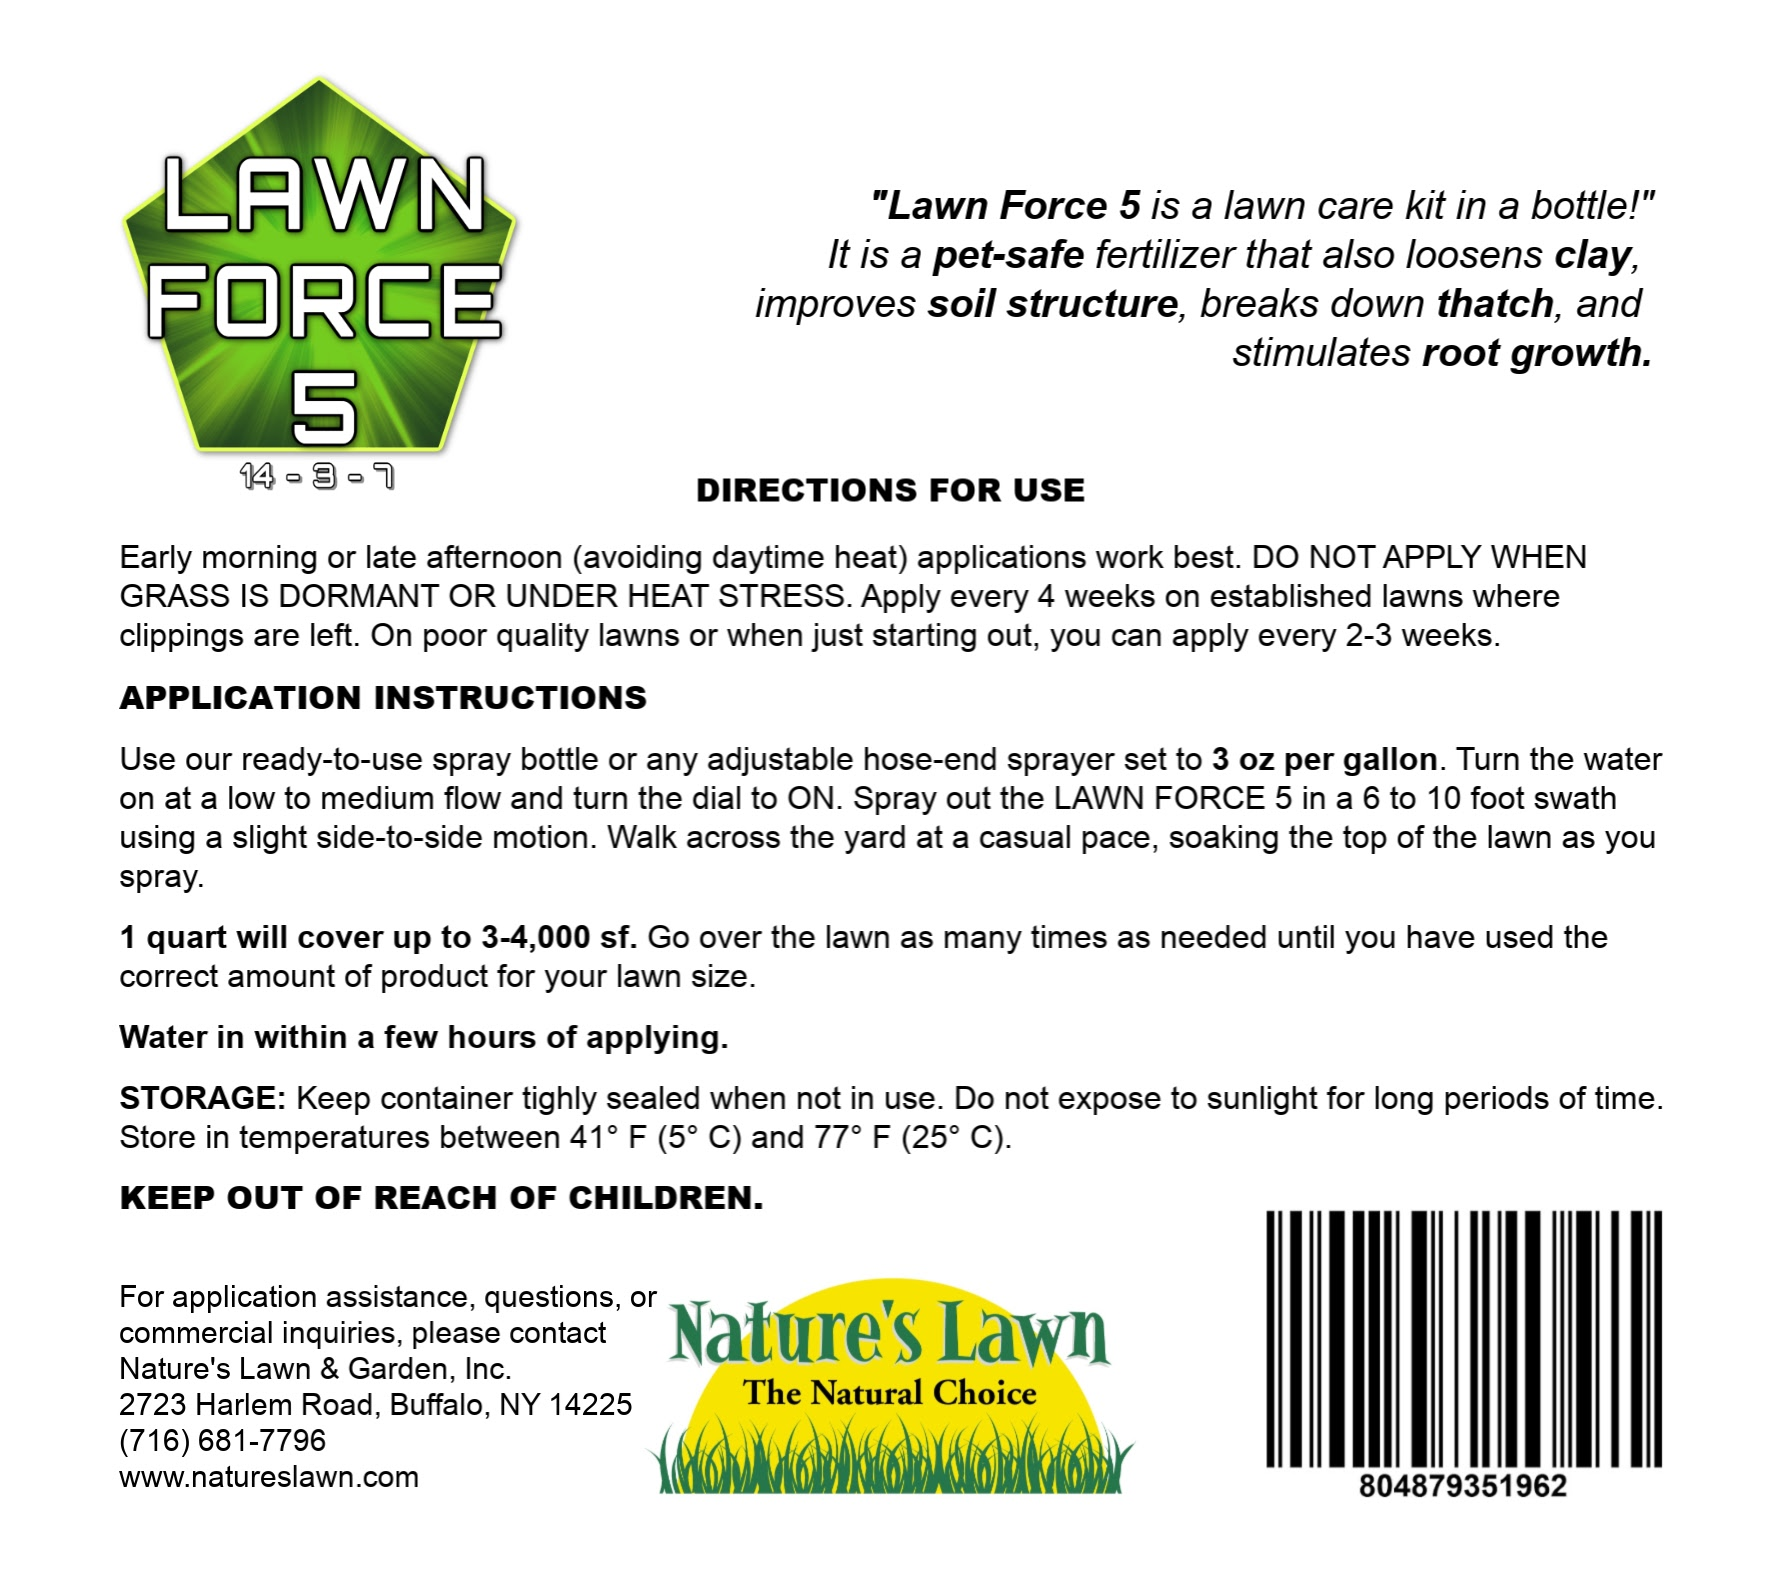 LAWN FORCE 5 Label